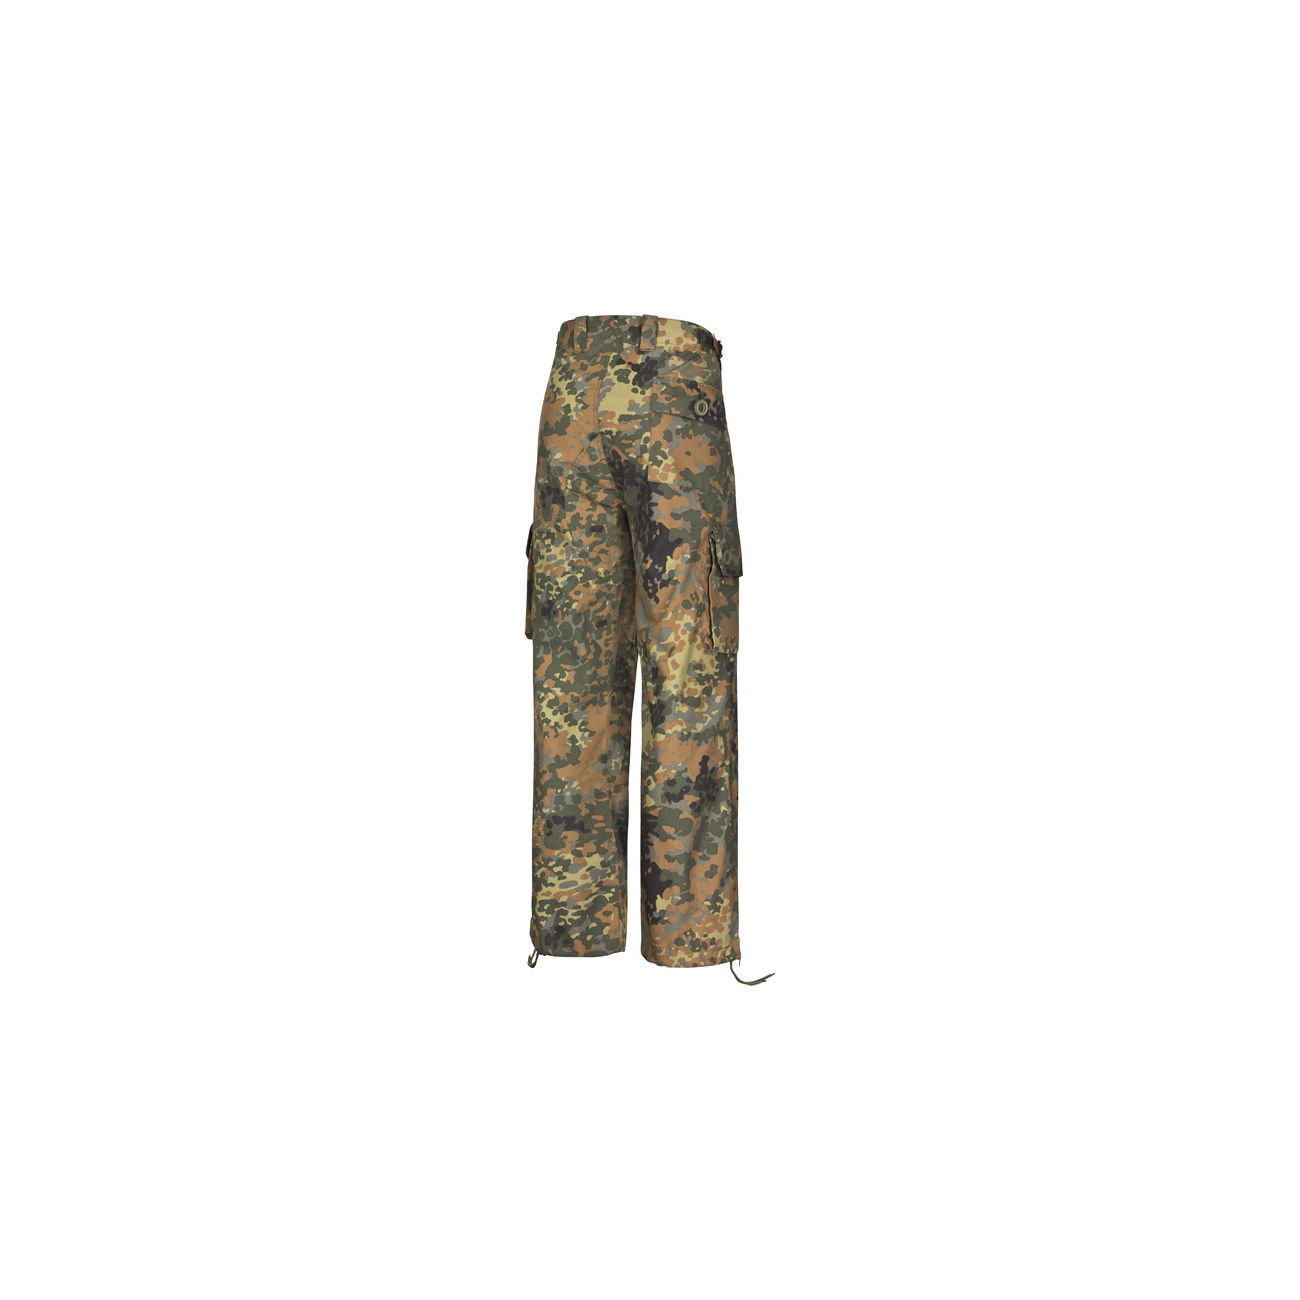 Kommandohose Light Weight Mil-Tec, flecktarn 1